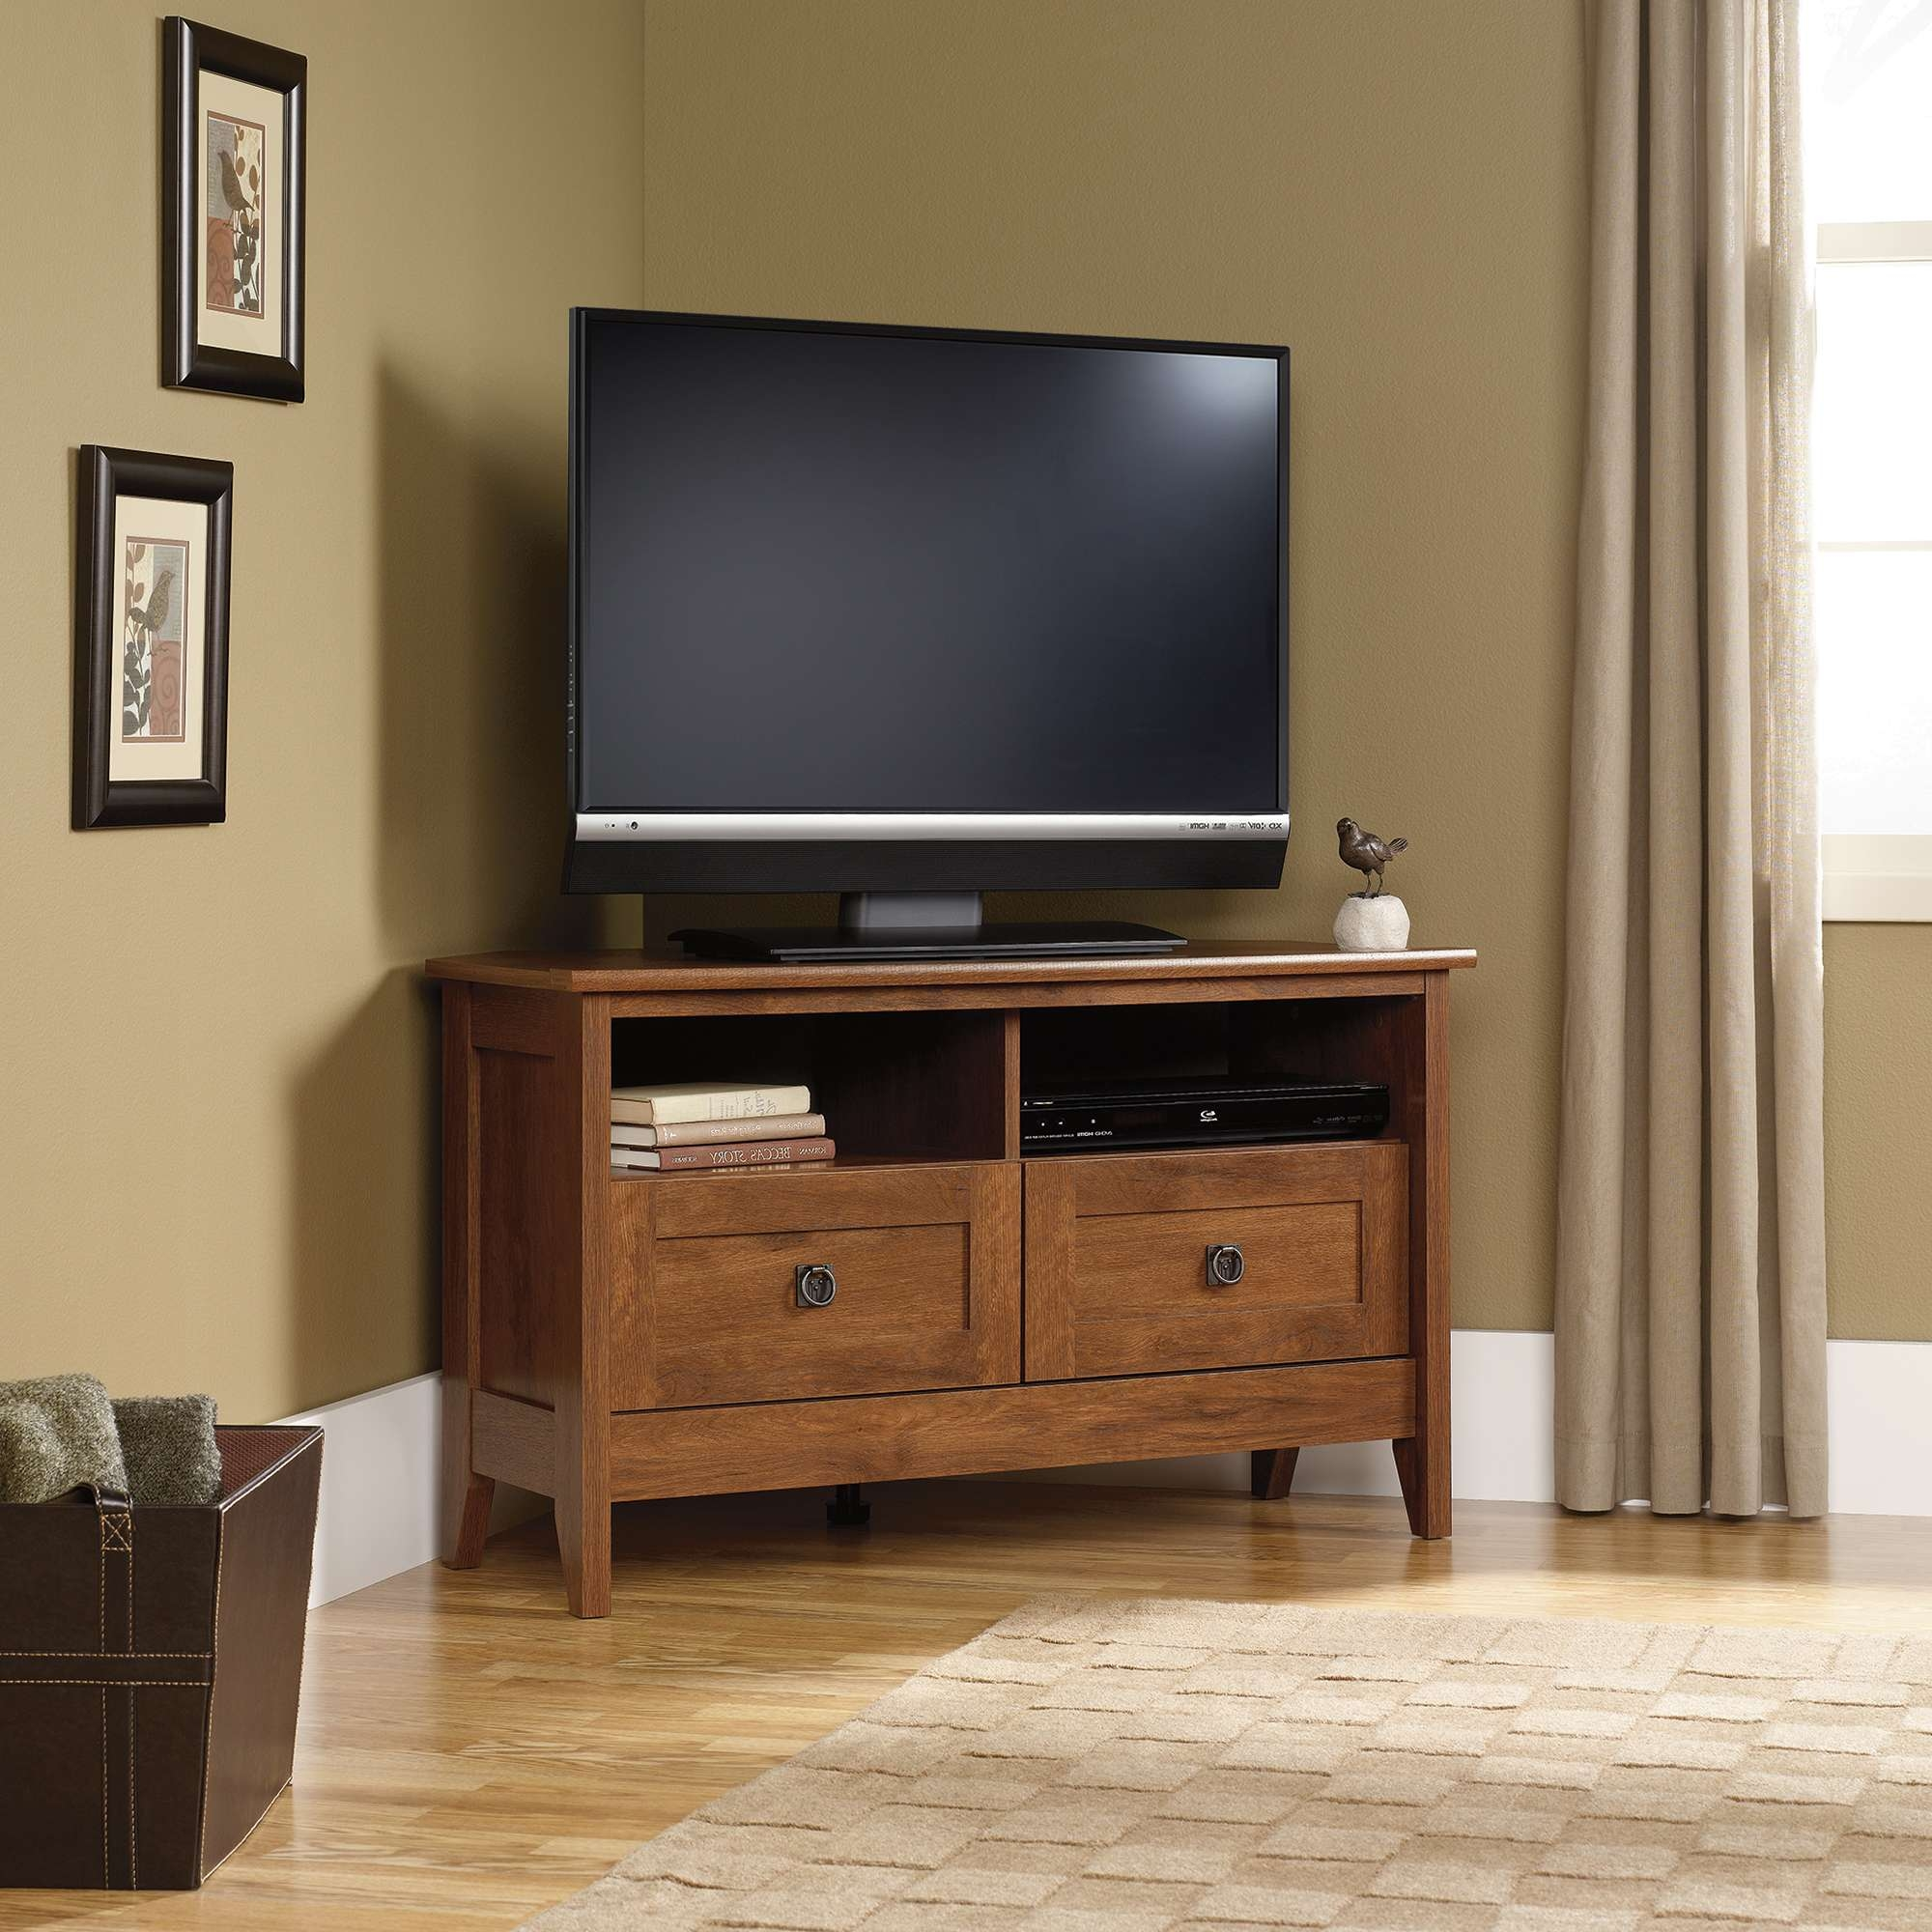 Tv Stand : 35 Frightening Corner Tv Stand Wood Photos Concept Within Black Wood Corner Tv Stands (View 15 of 15)